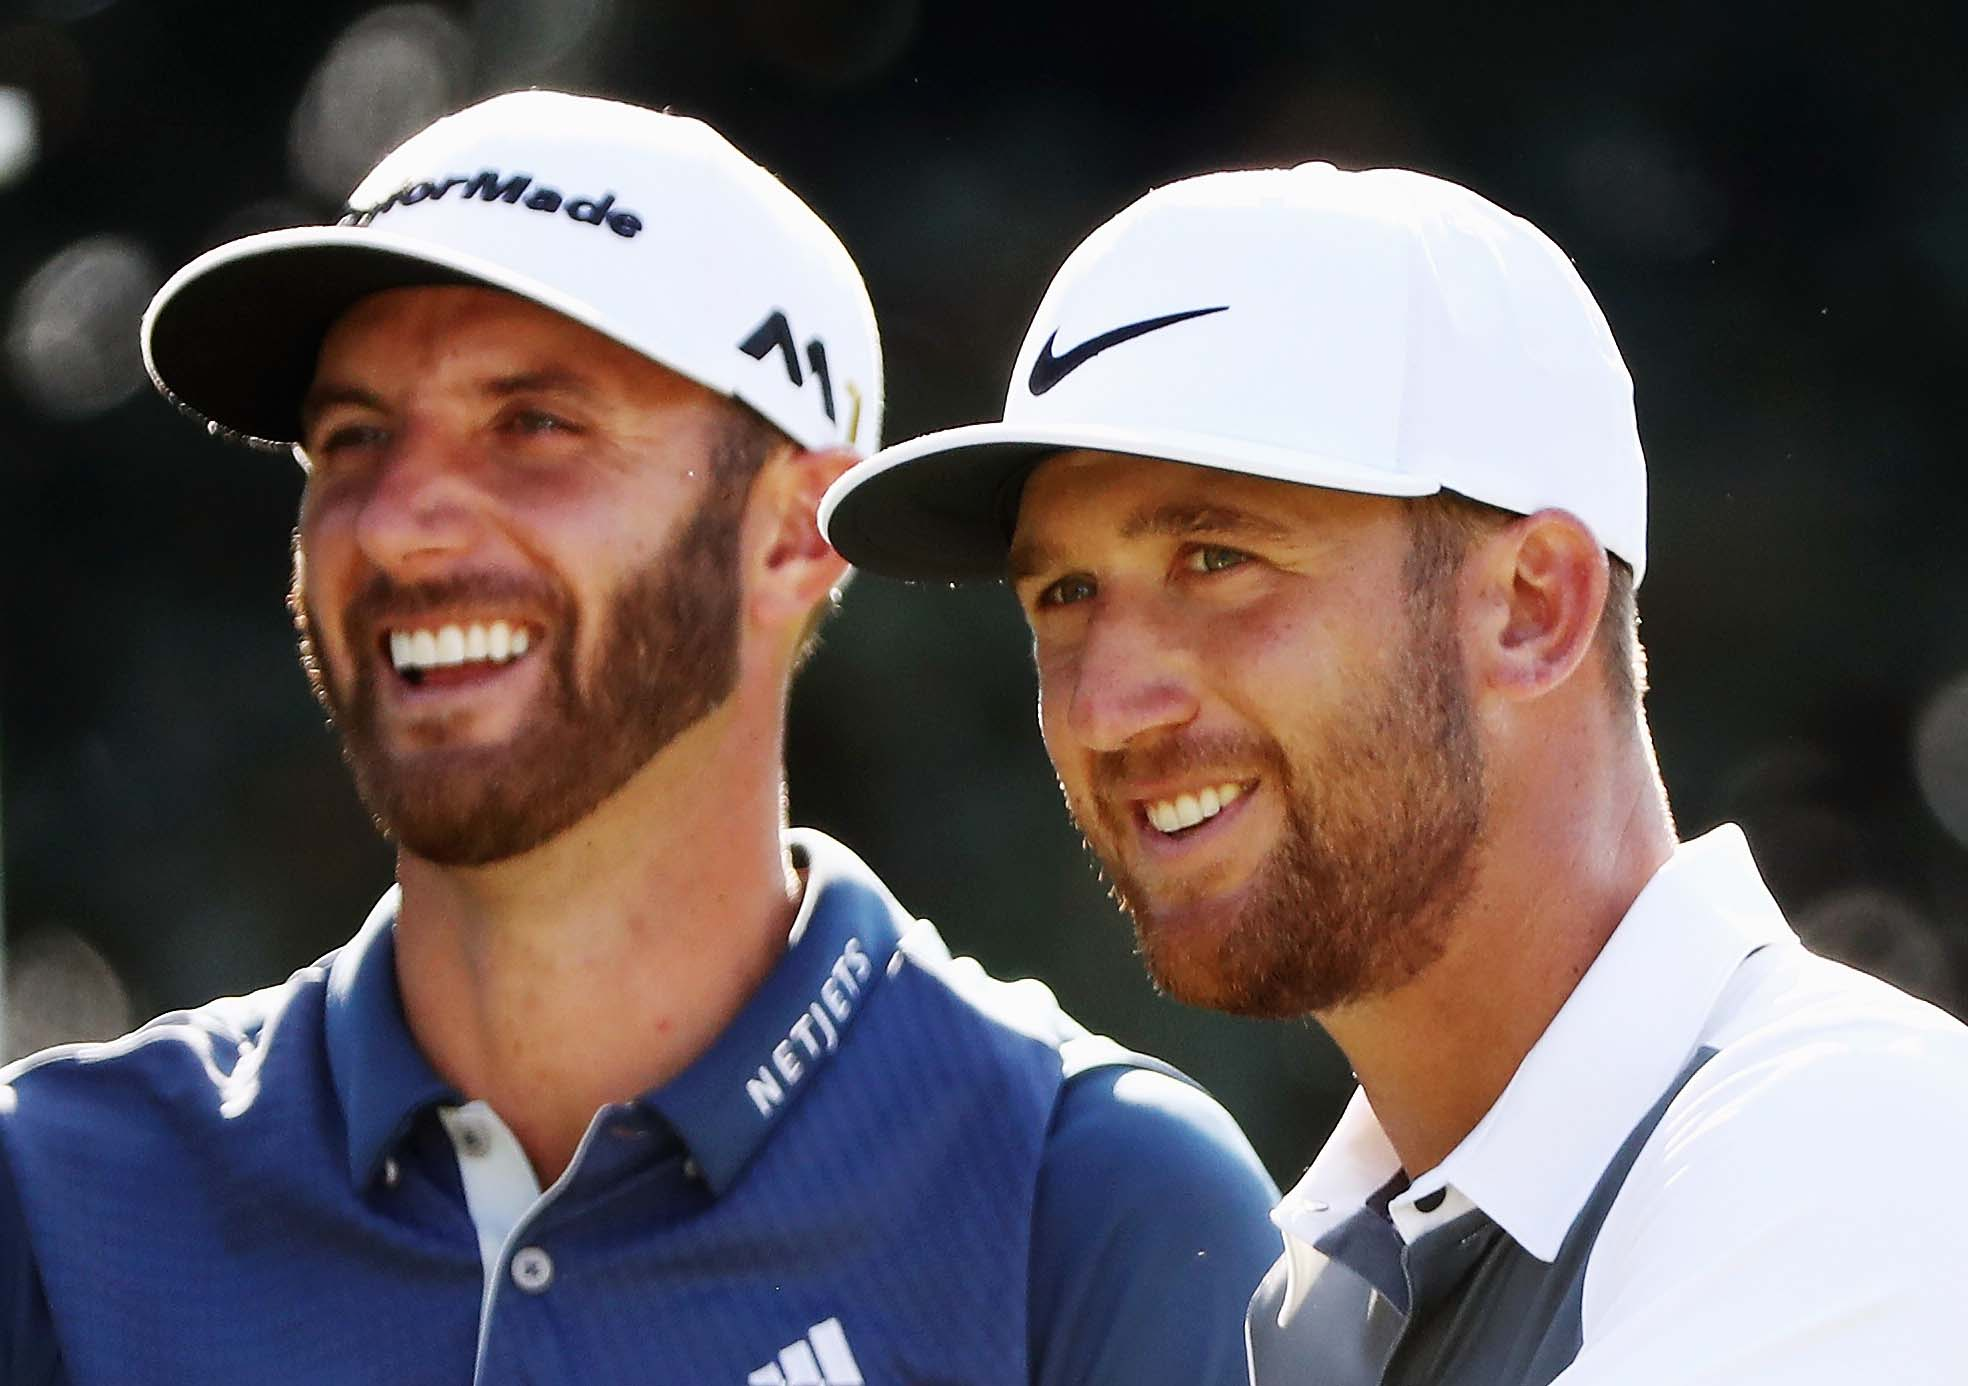 Dustin Johnson and Kevin Chappell